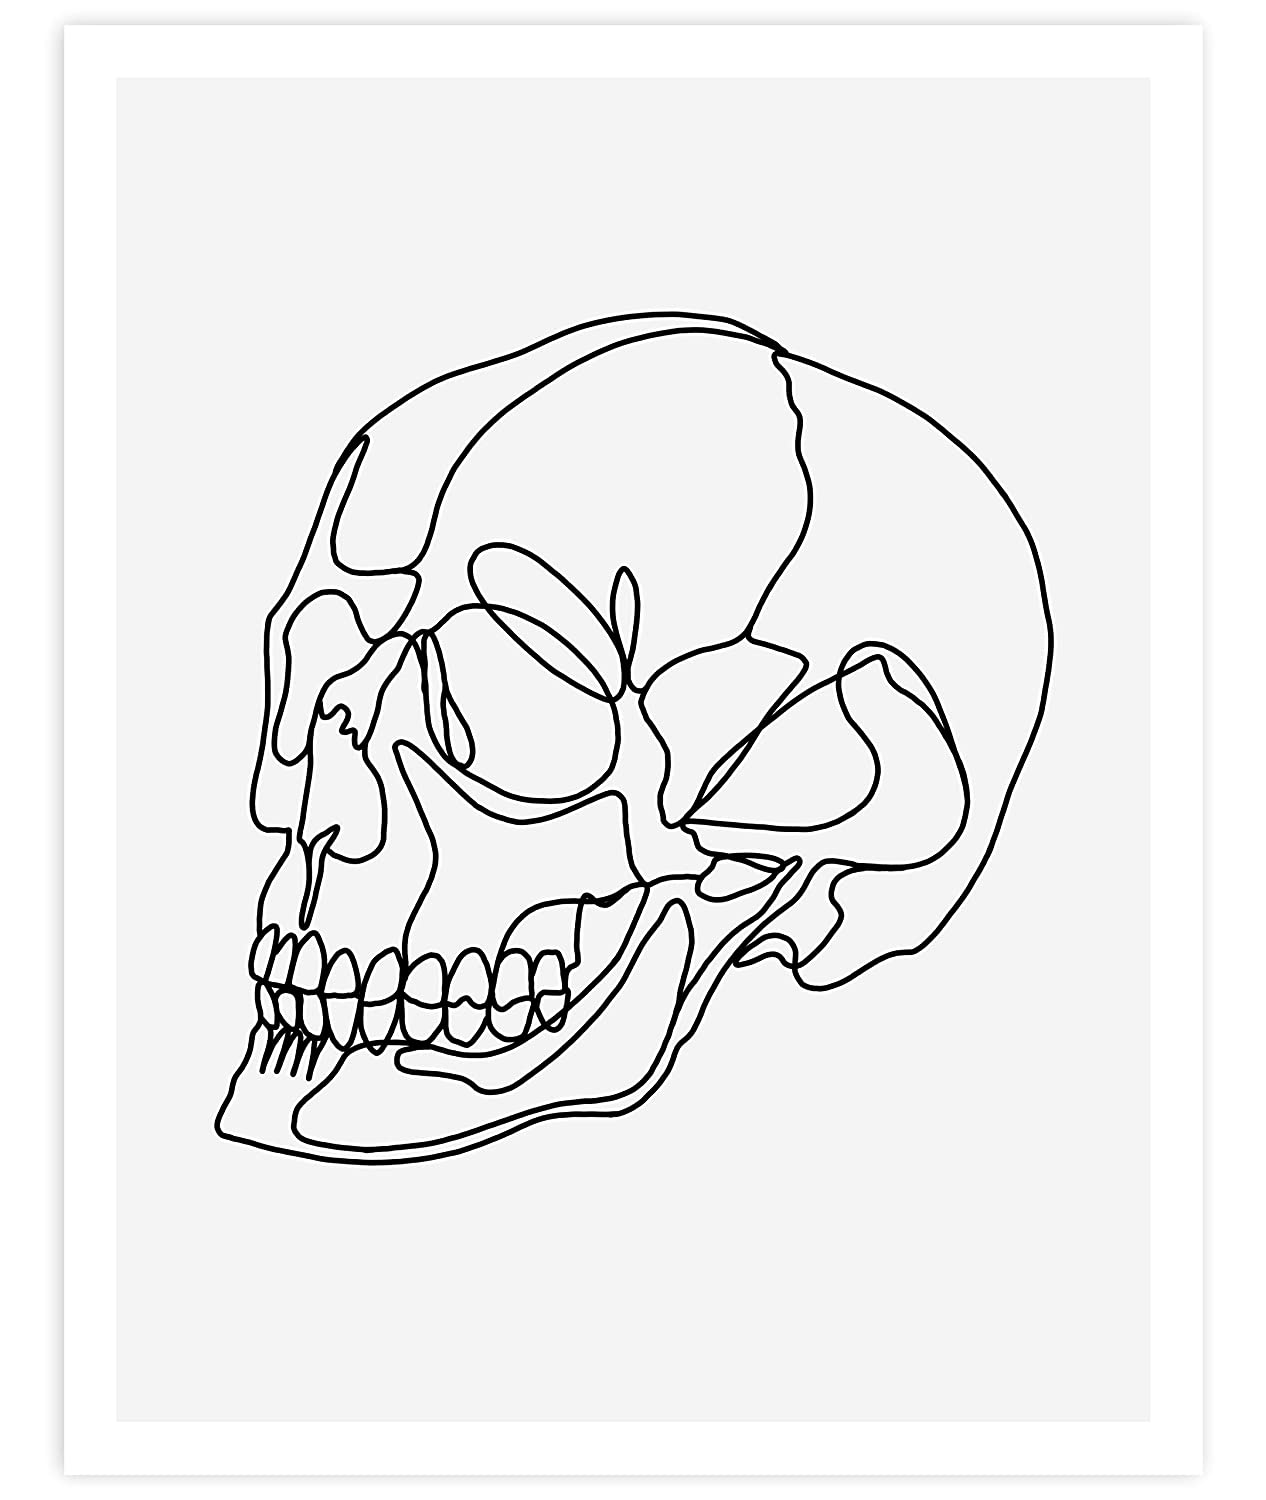 Skull, Minimalist Abstract Art, Black Line Drawing Contemporary Wall Art For Bedroom and Home Decor, Modern Boho Art Print Poster, Country Farmhouse Wall Decor 11x14 Inches, Unframed